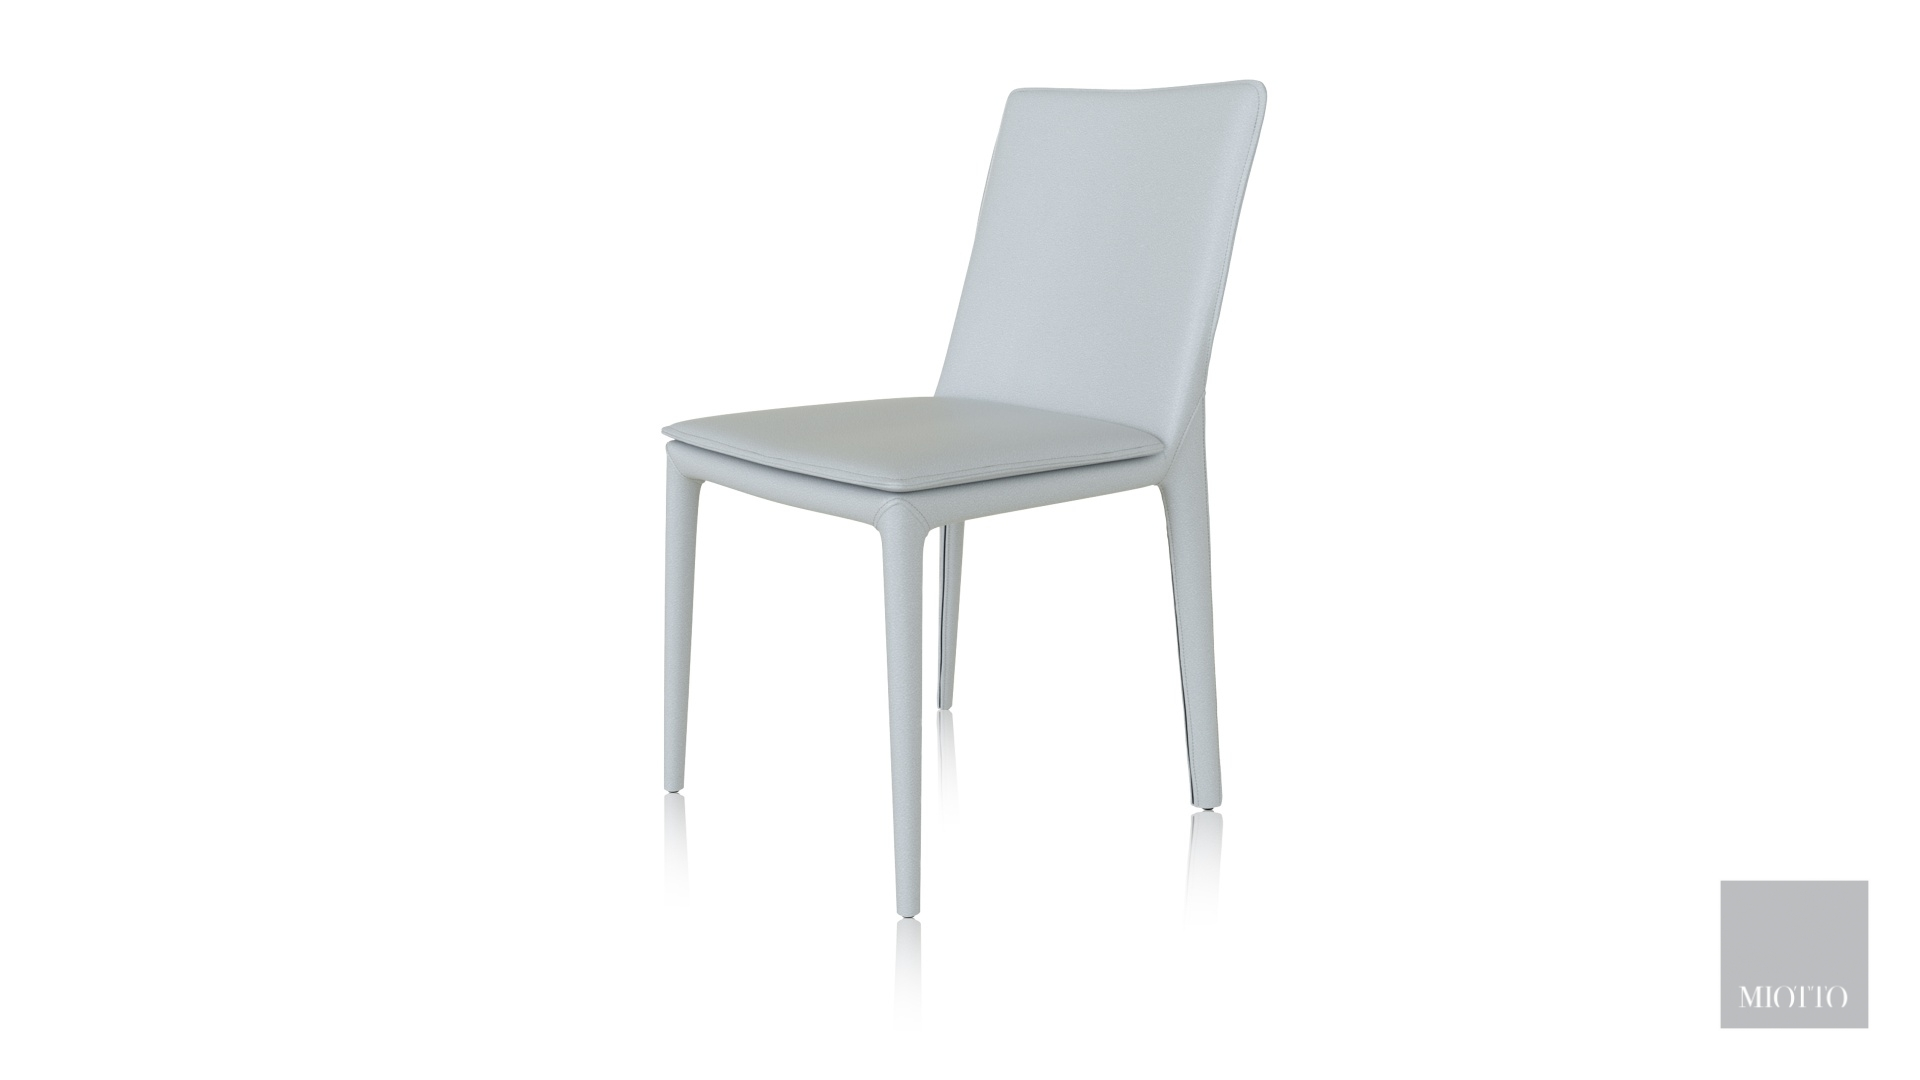 miotto_torano DC white T miotto dining chair furniture